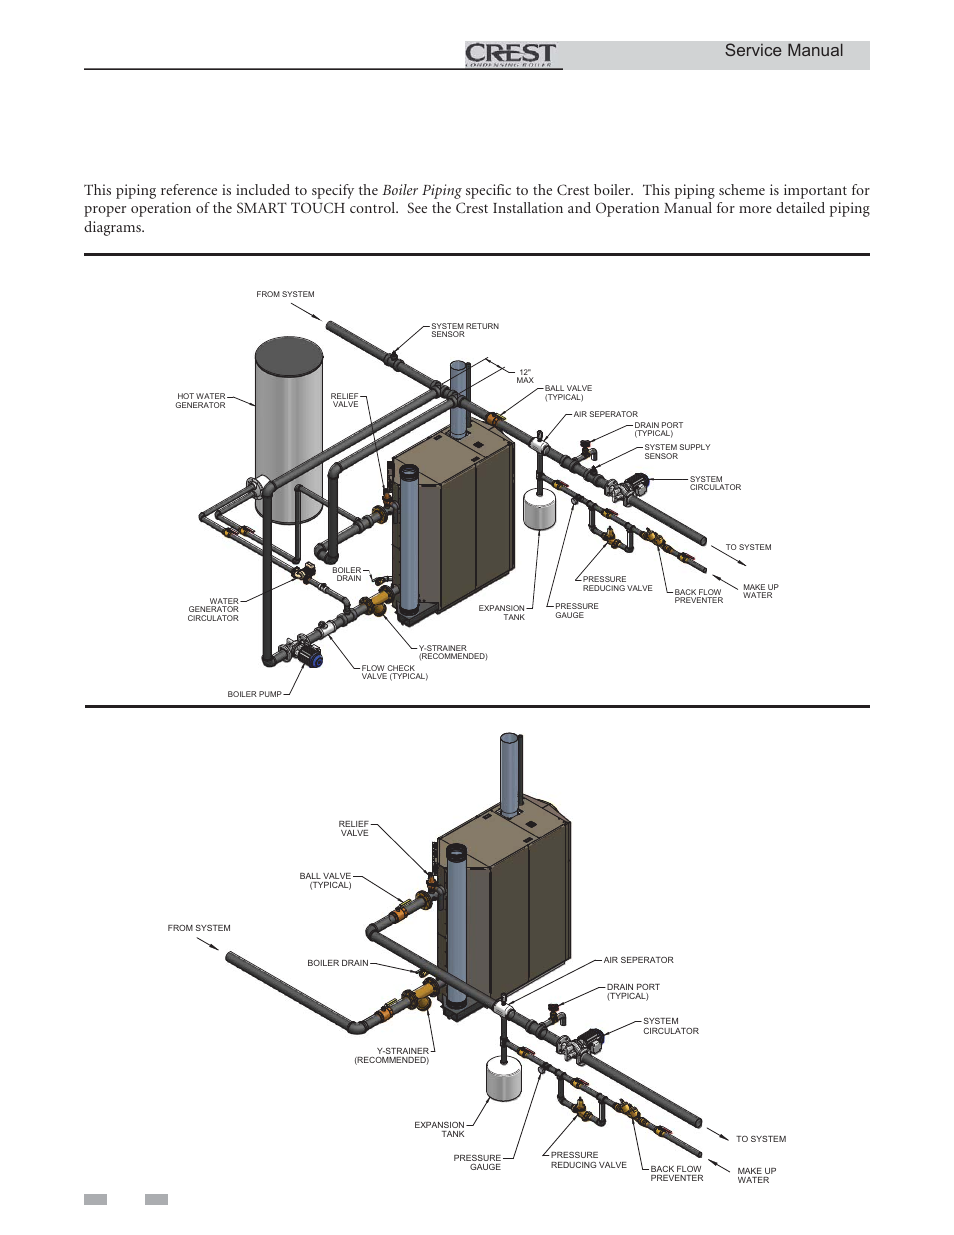 Service  Boiler Piping  Service Manual